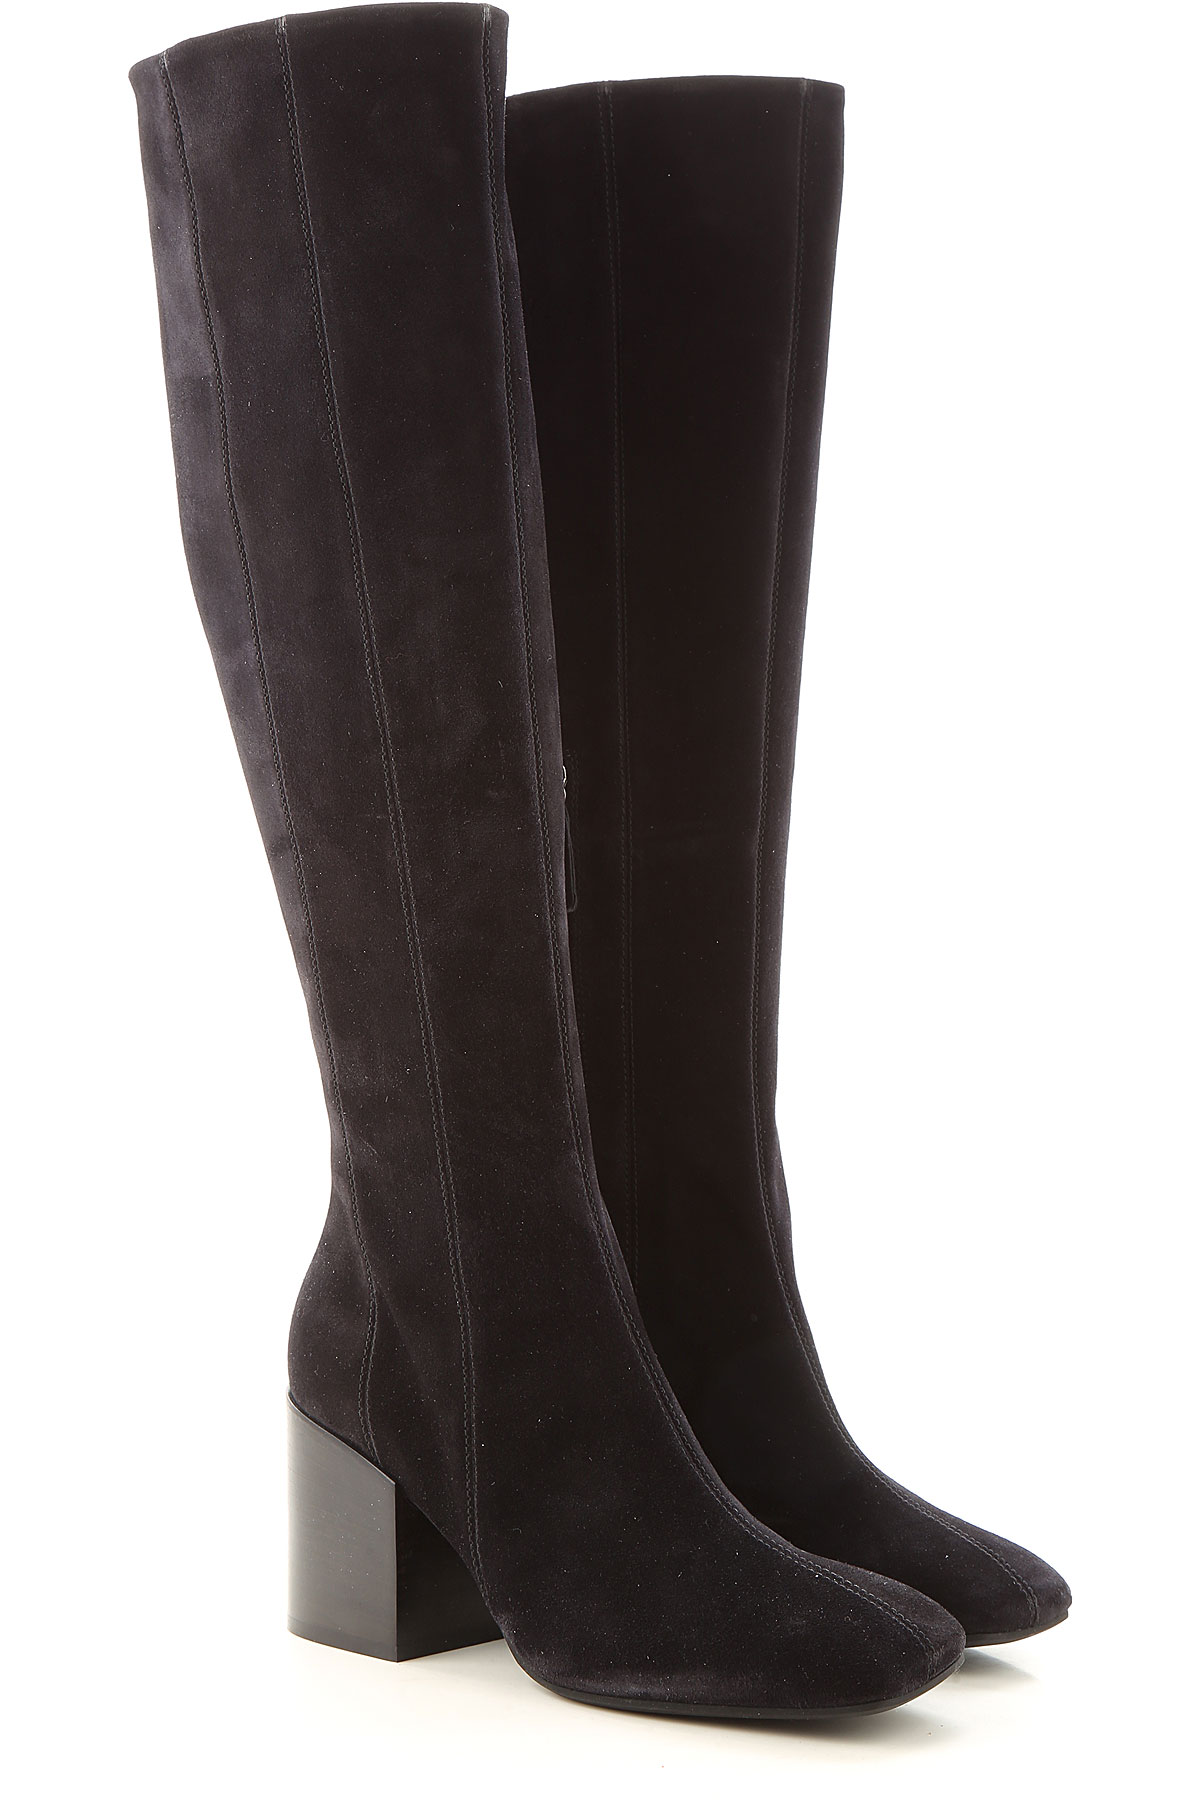 Lella Baldi Boots for Women, Booties On Sale, Black, Suede leather, 2019, 6 7 8